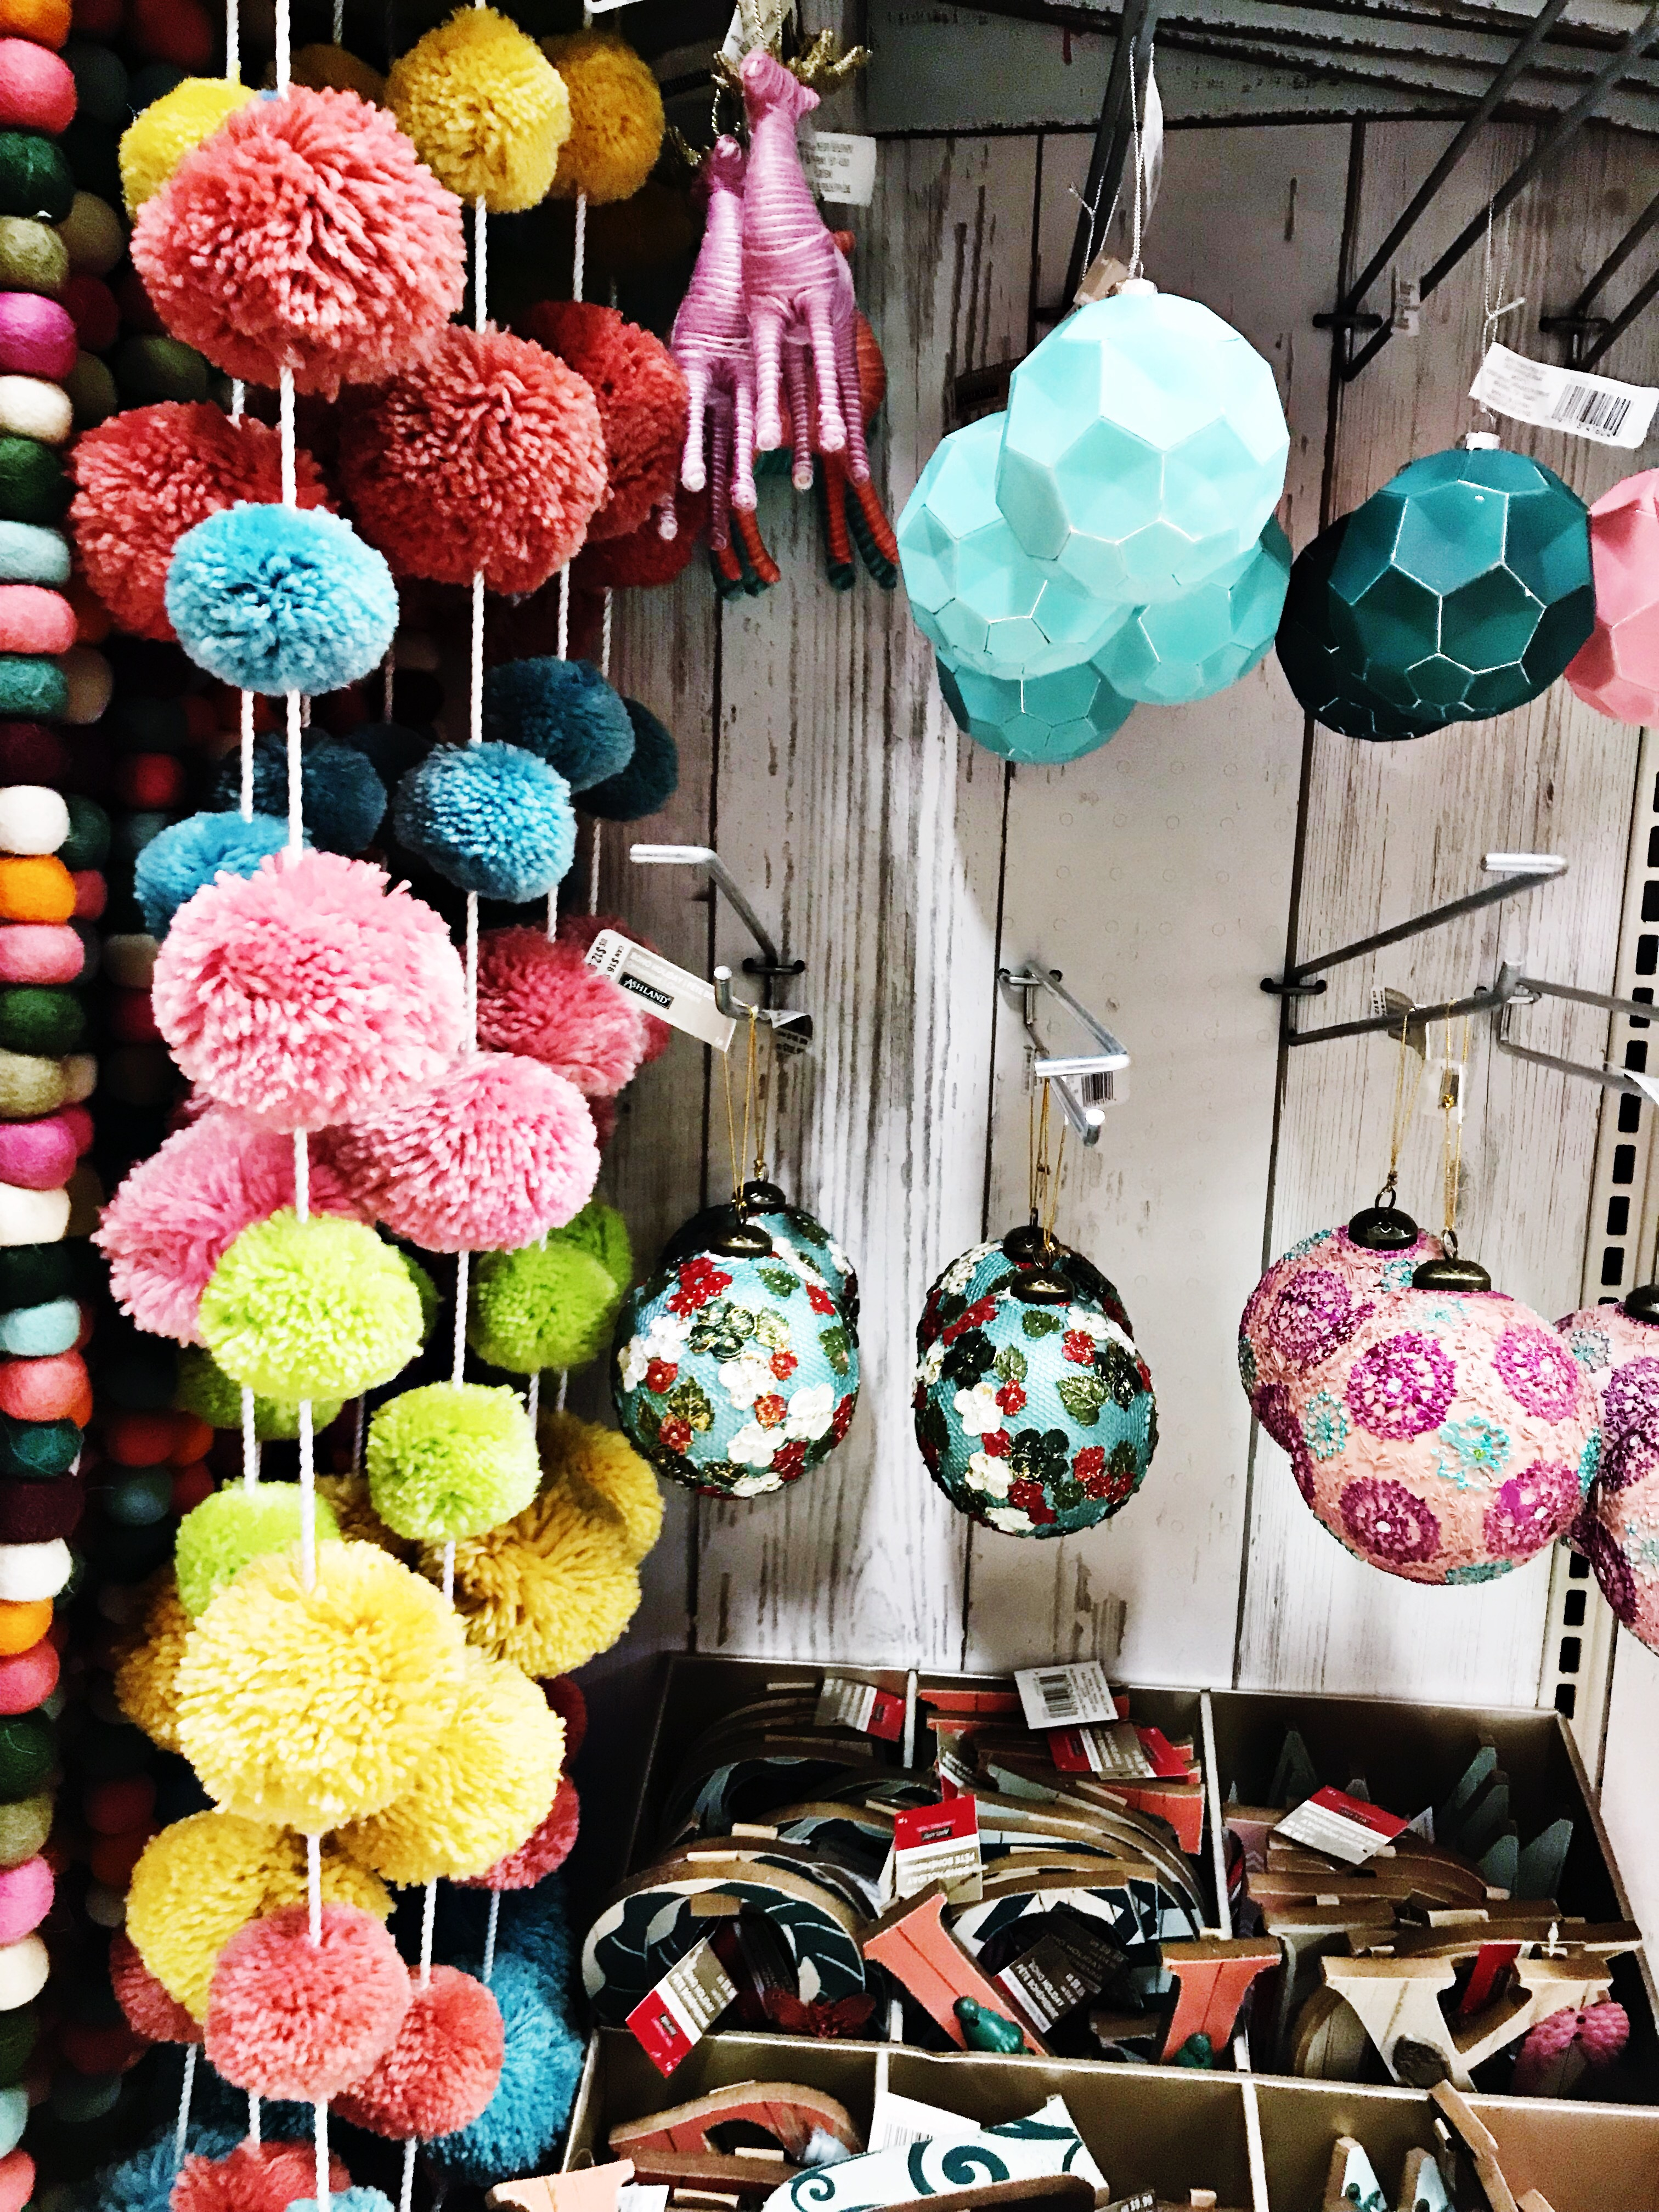 ... with the Boho Chic Decor and the vintage style pieces! Check out those pom pom garlands, Christmas cactus and lots of chic Christmas items at Michael's.